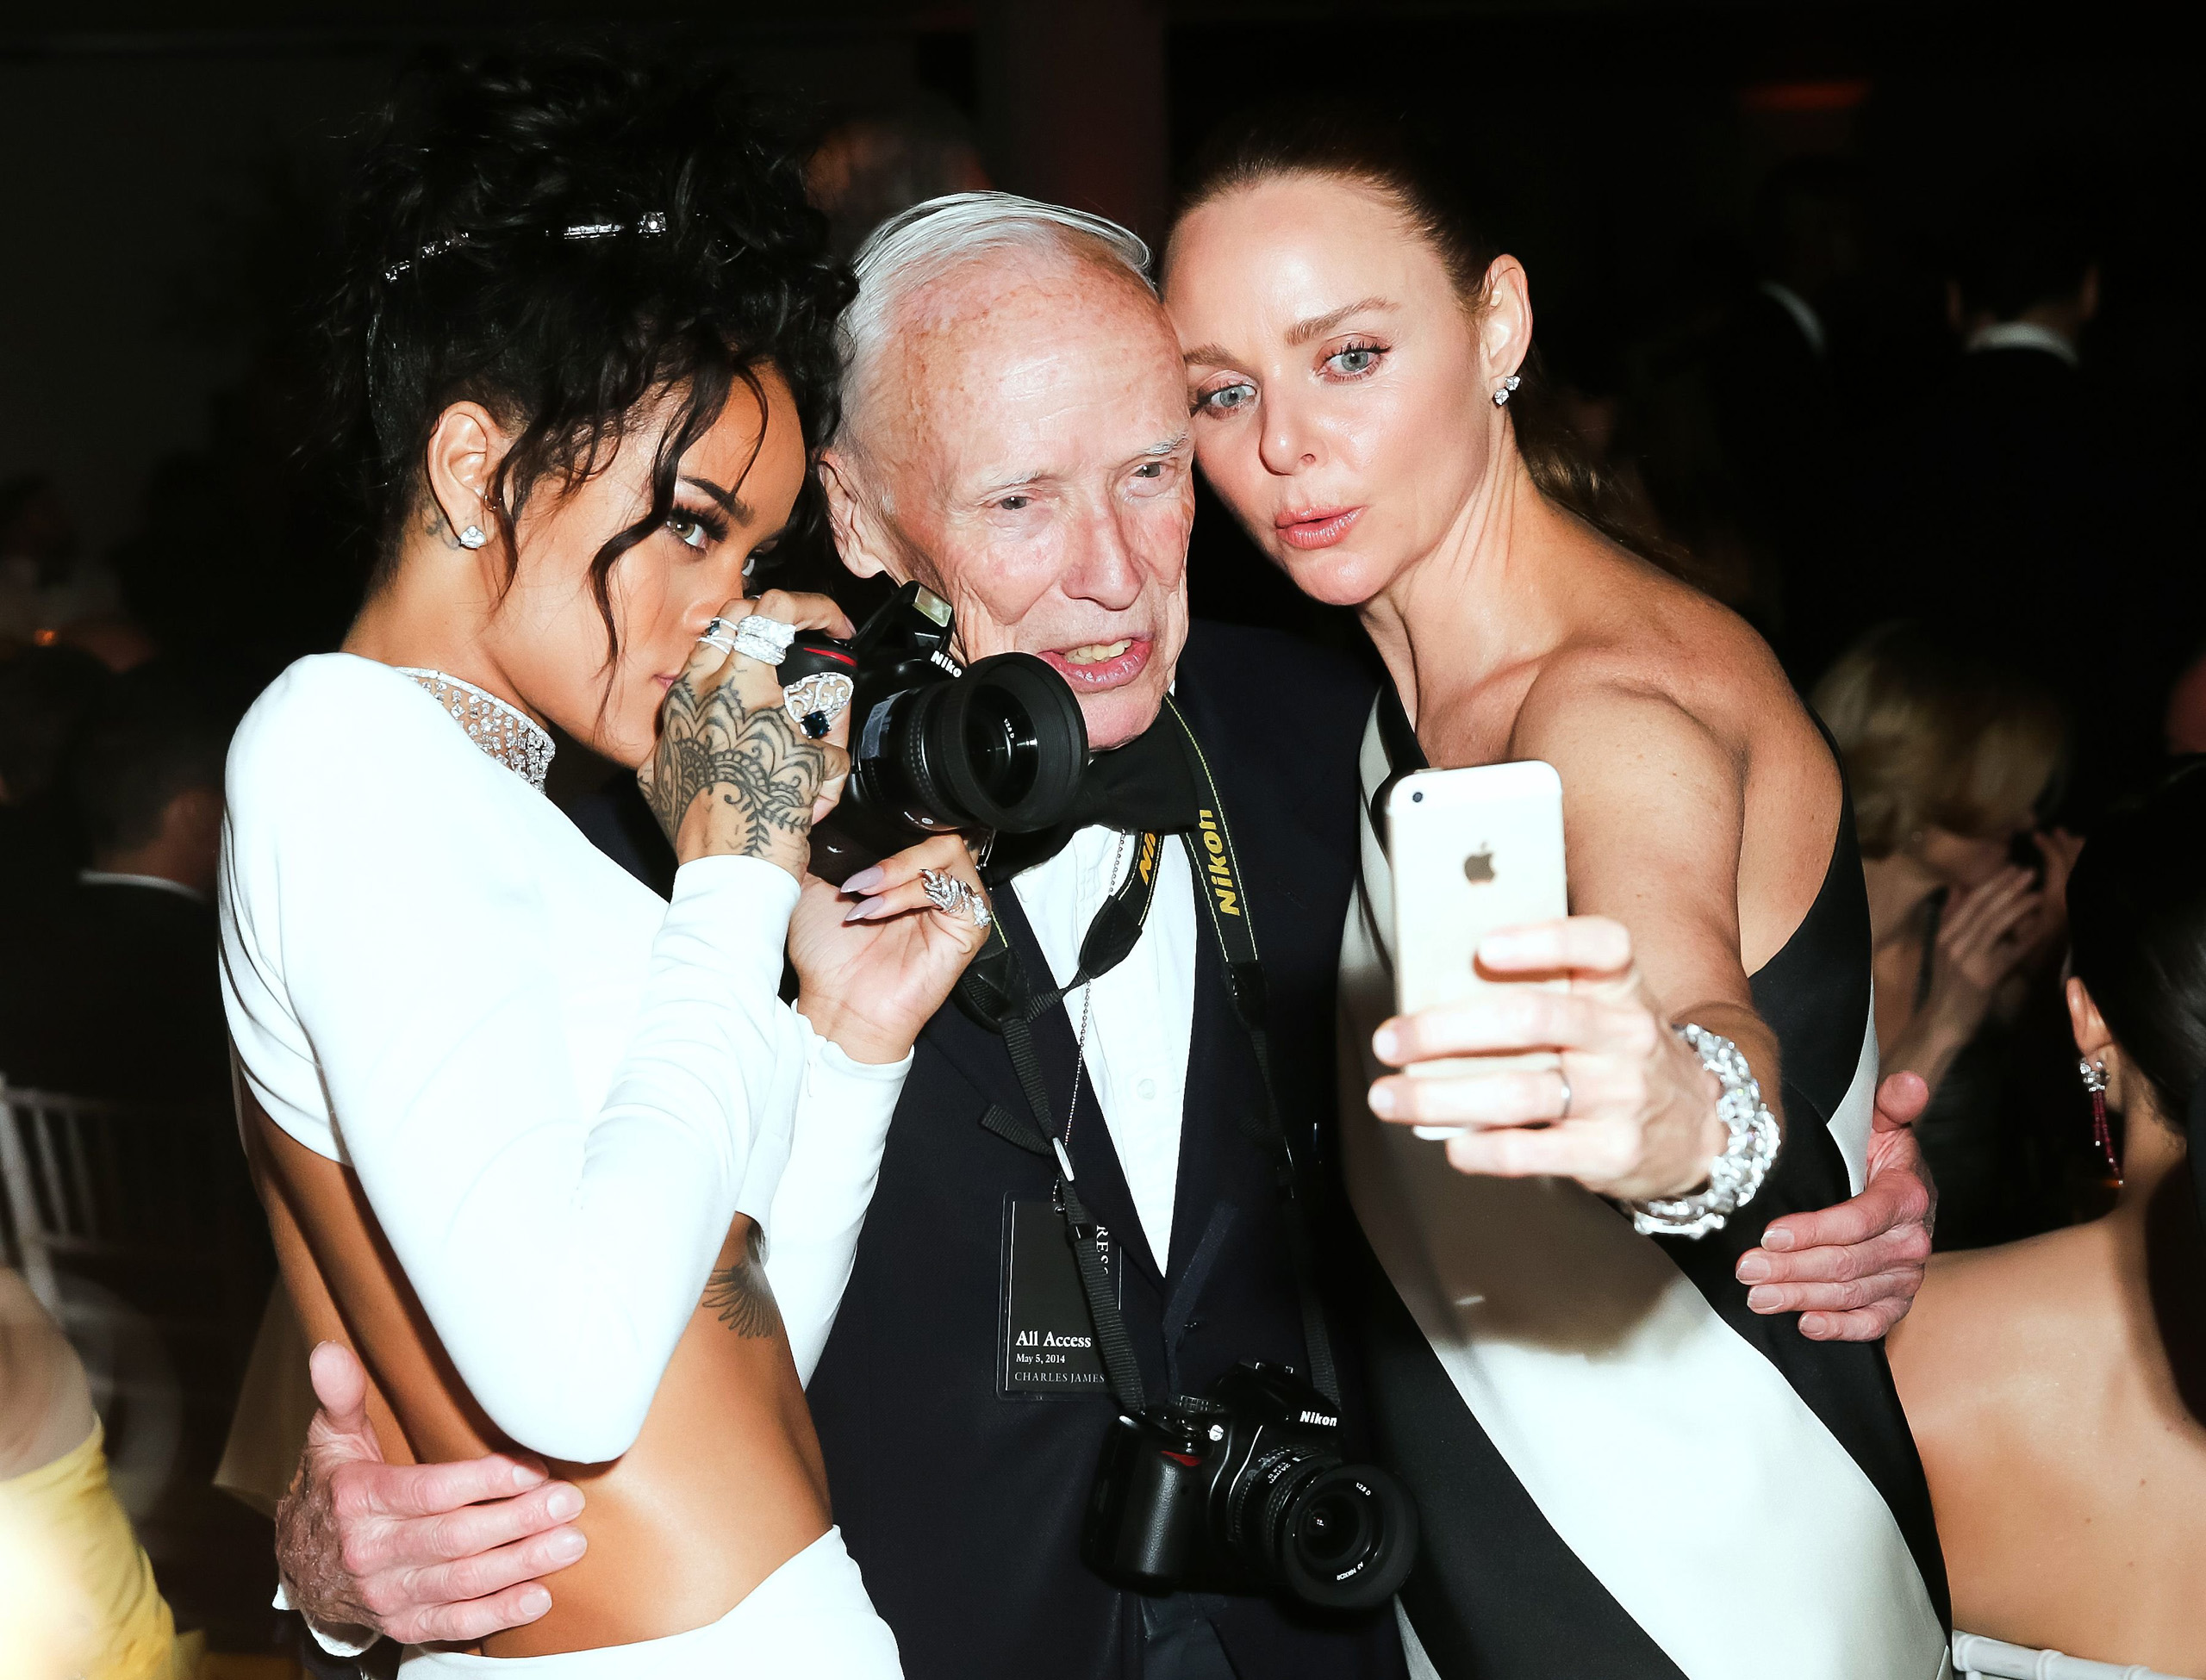 Rihanna, Bill Cunningham, and  Stella McCartney at the Costume Institute Gala Benefit celebrating Charles James: Beyond Fashion - Dinner at the Metropolitan Museum of Art in New York City on May 5, 2014.